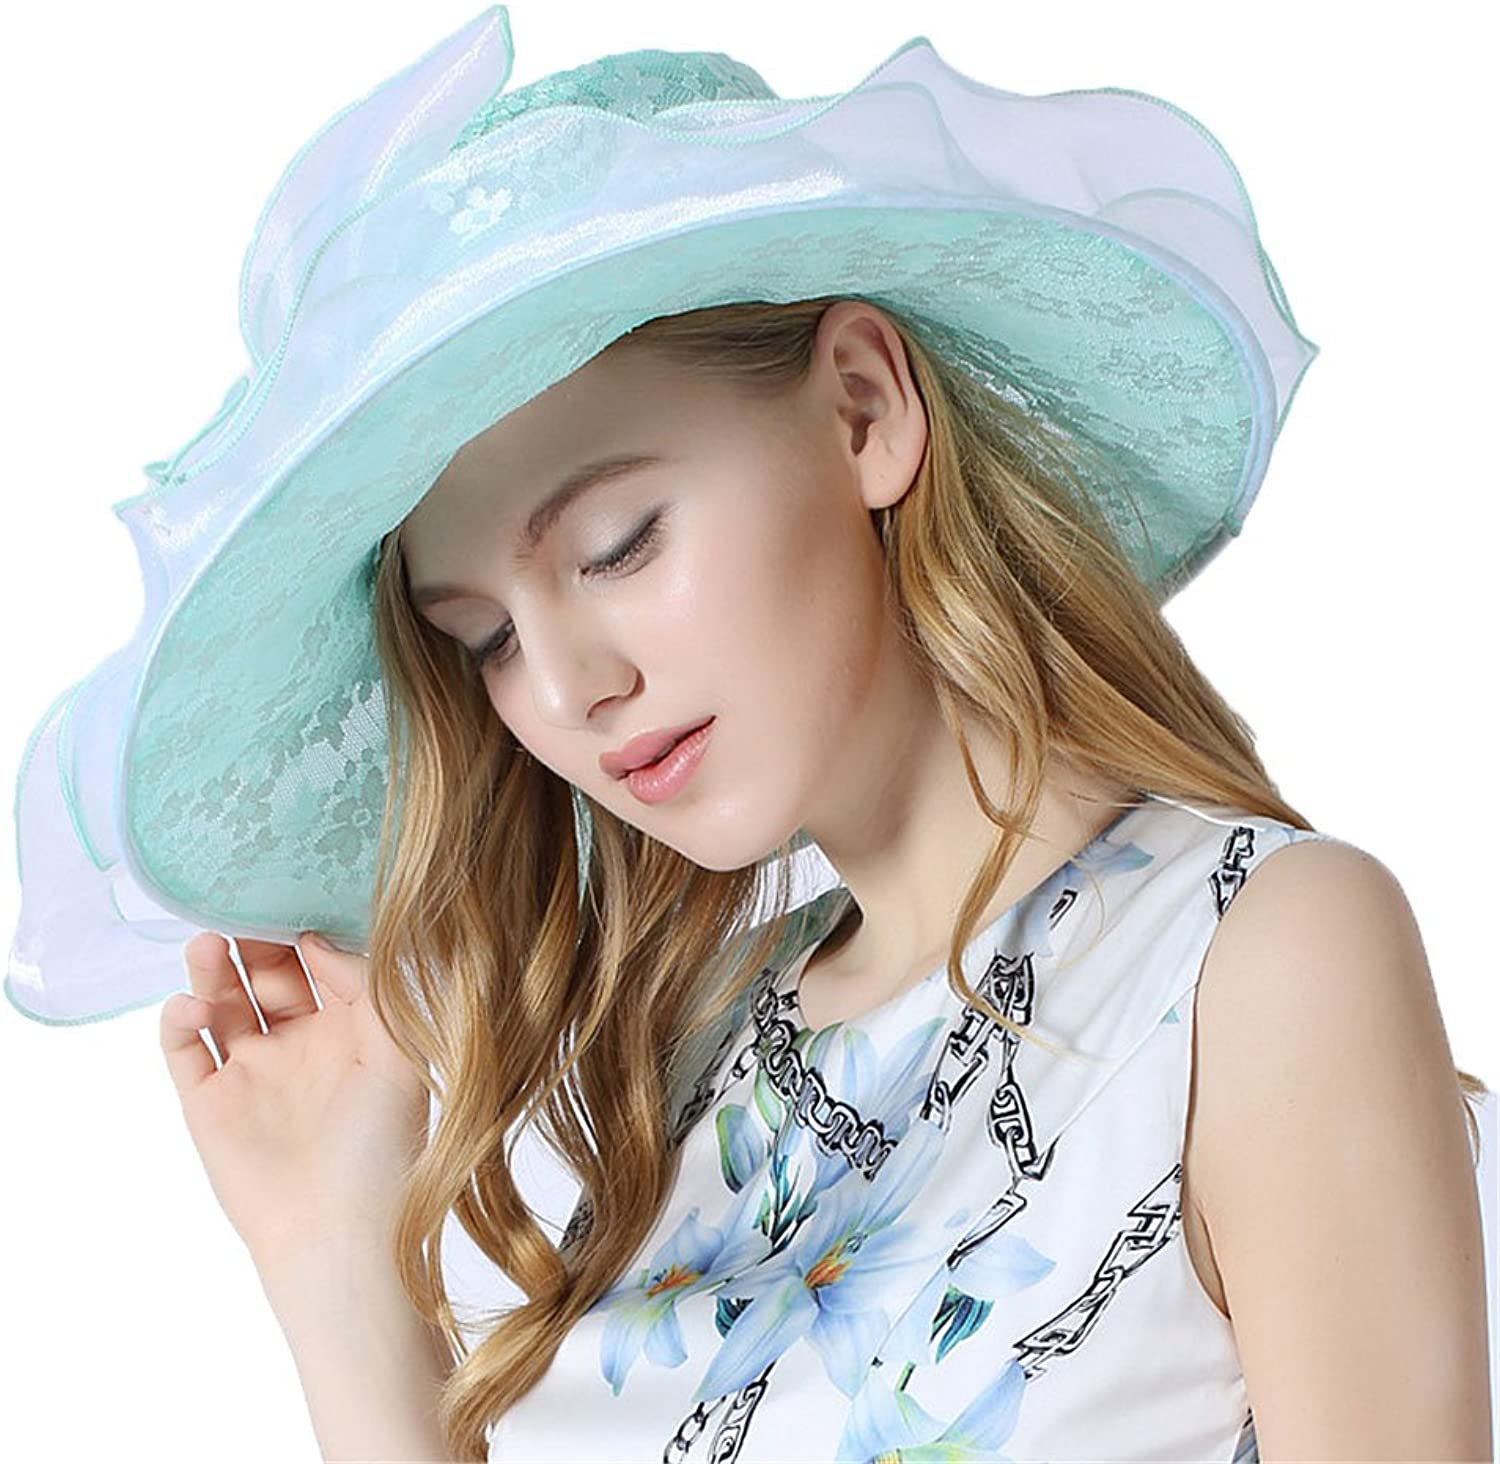 W.S.-YUE Spring and Summer Gauze Cap with Big Cap Flowers Decorated Hat